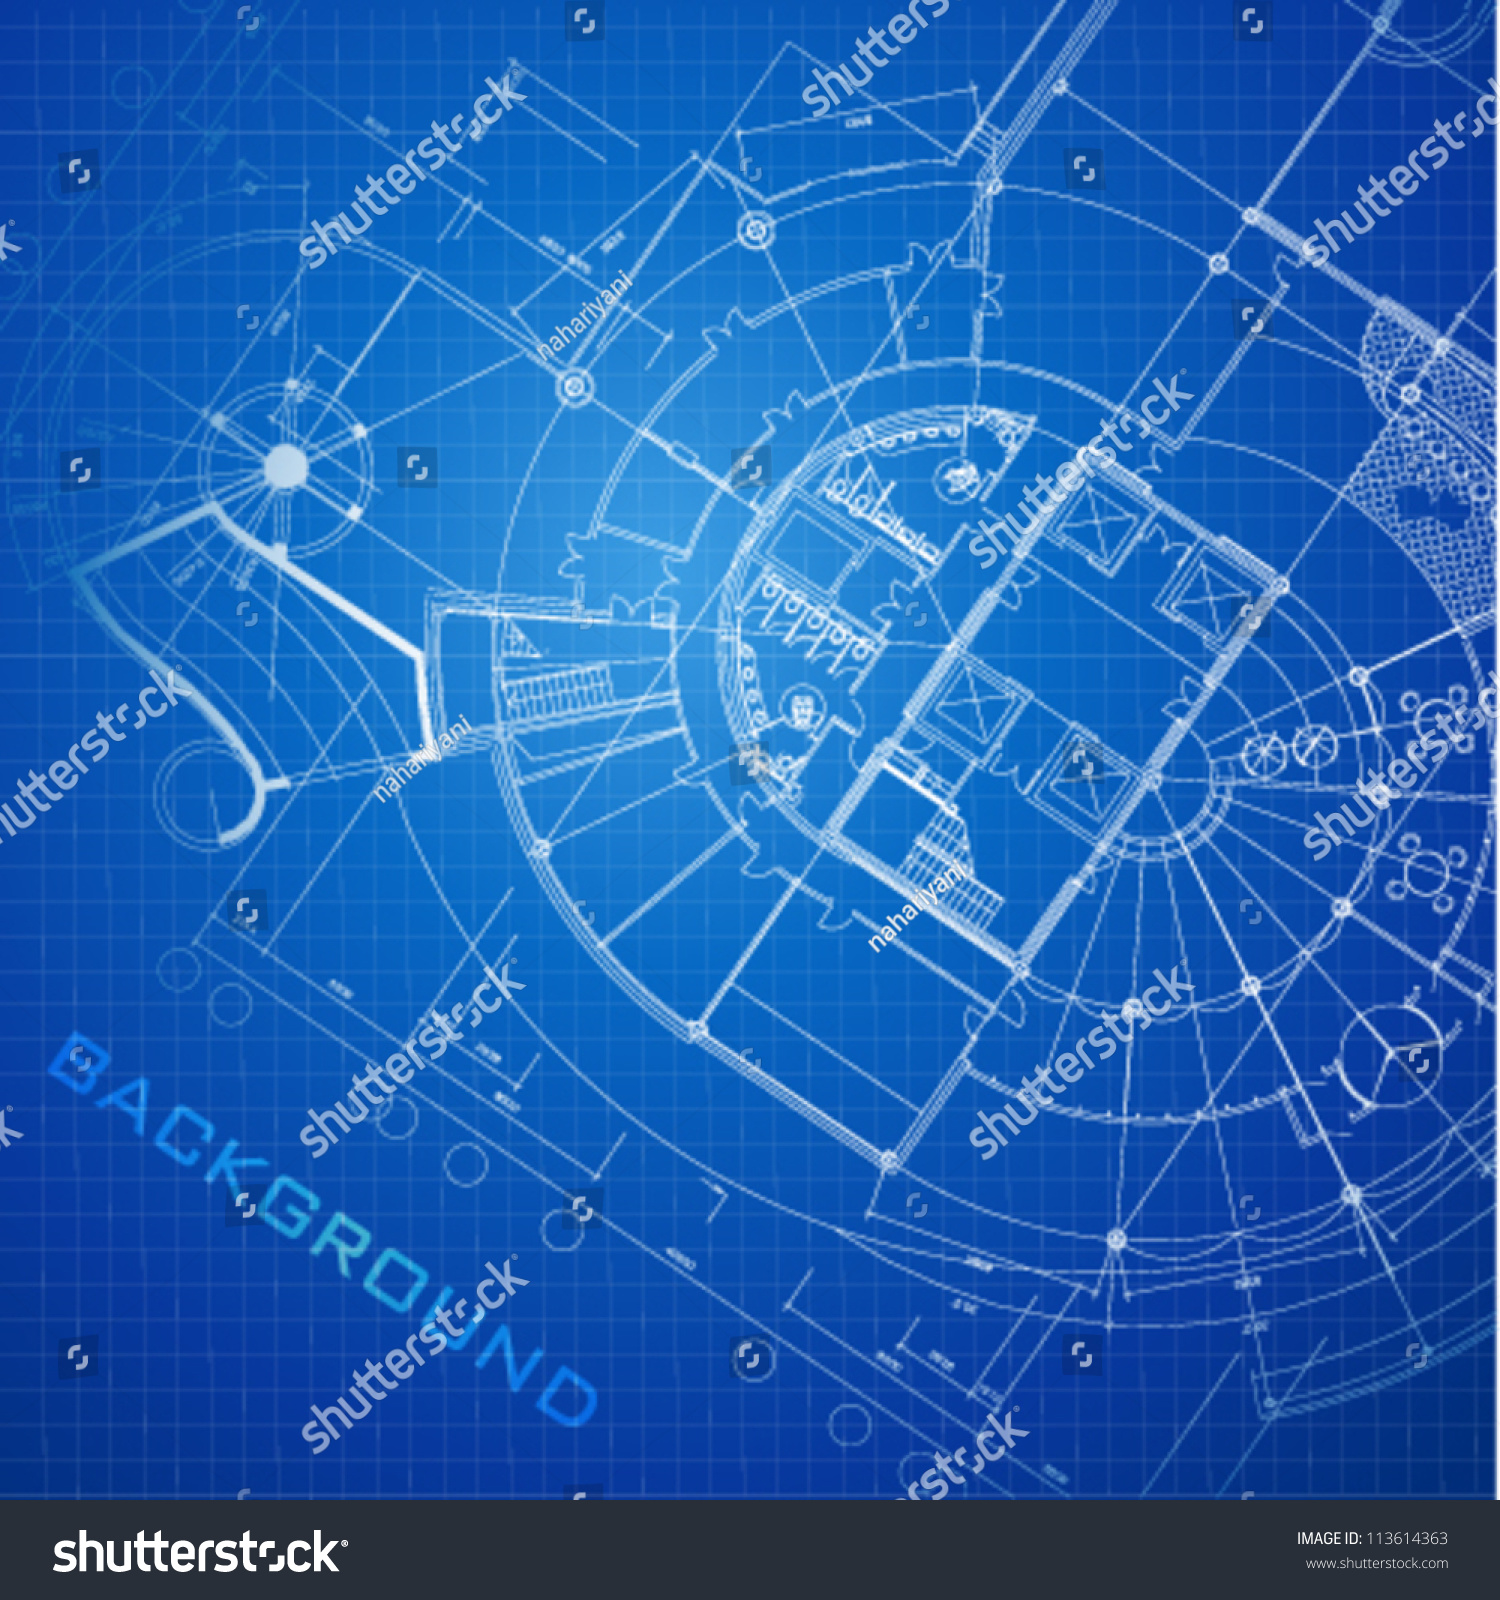 Urban blueprint vector architectural background part stock for Blueprint architects